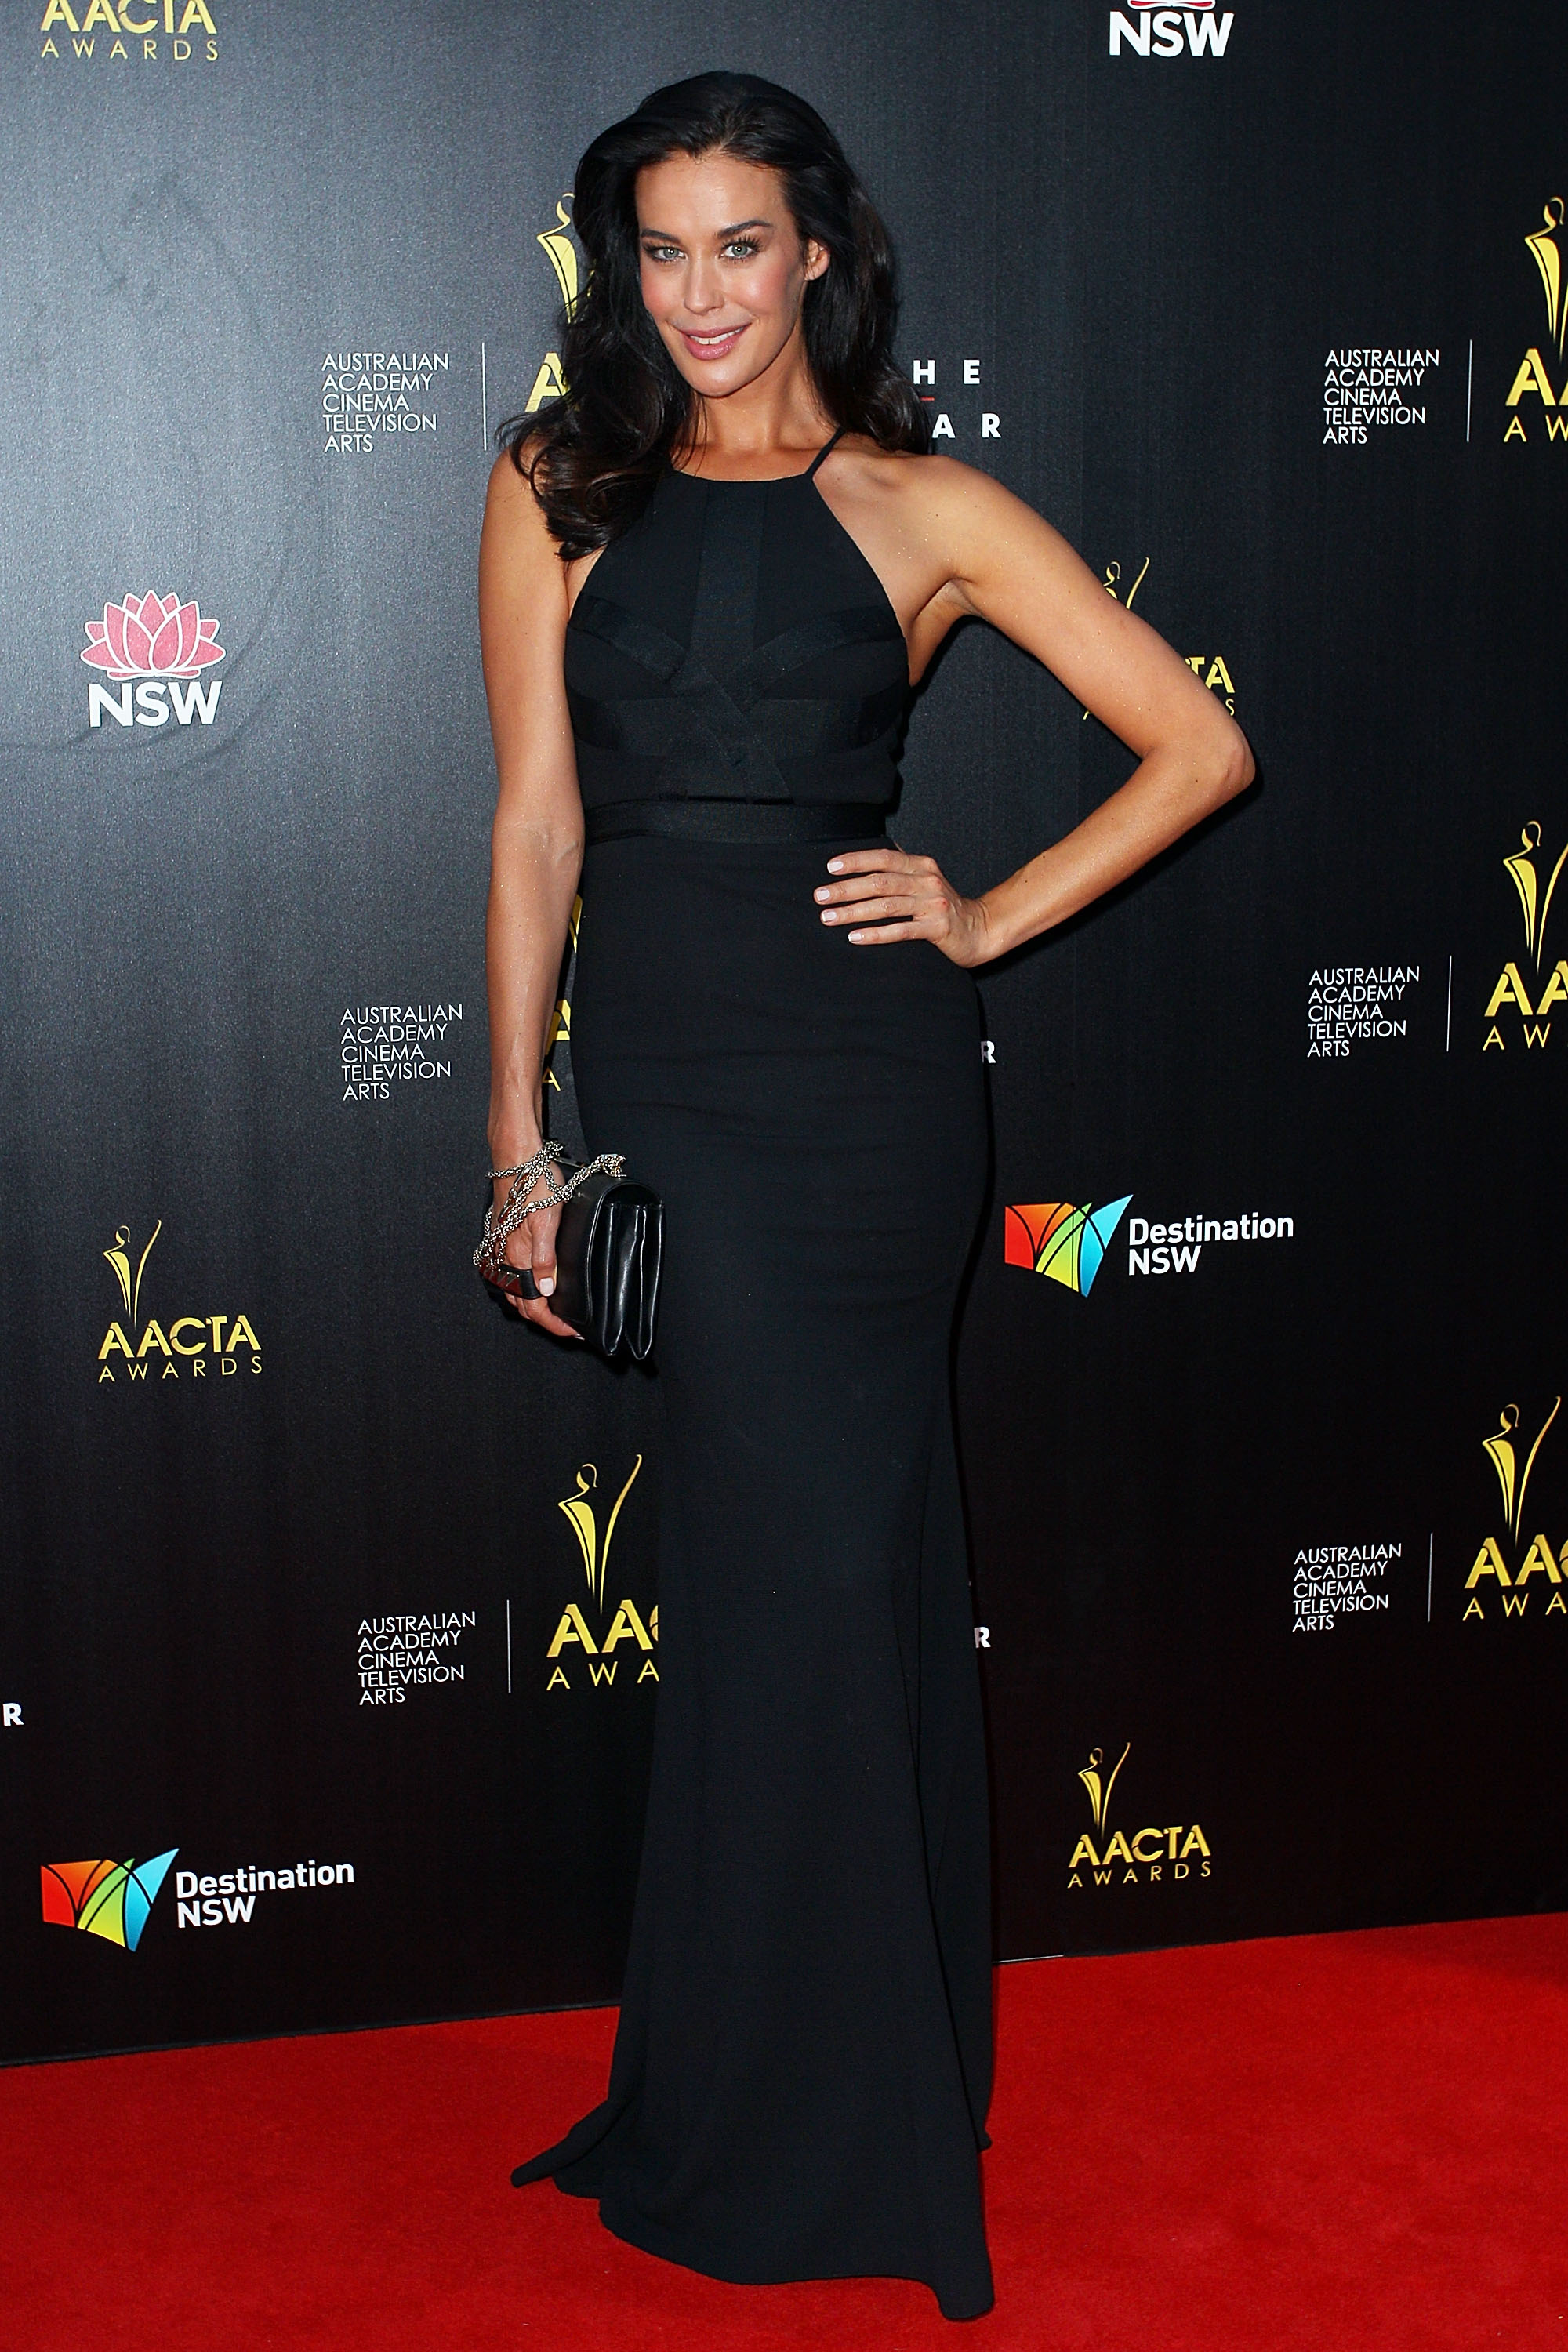 Megan Gale went for a black look at the AACTA Awards.